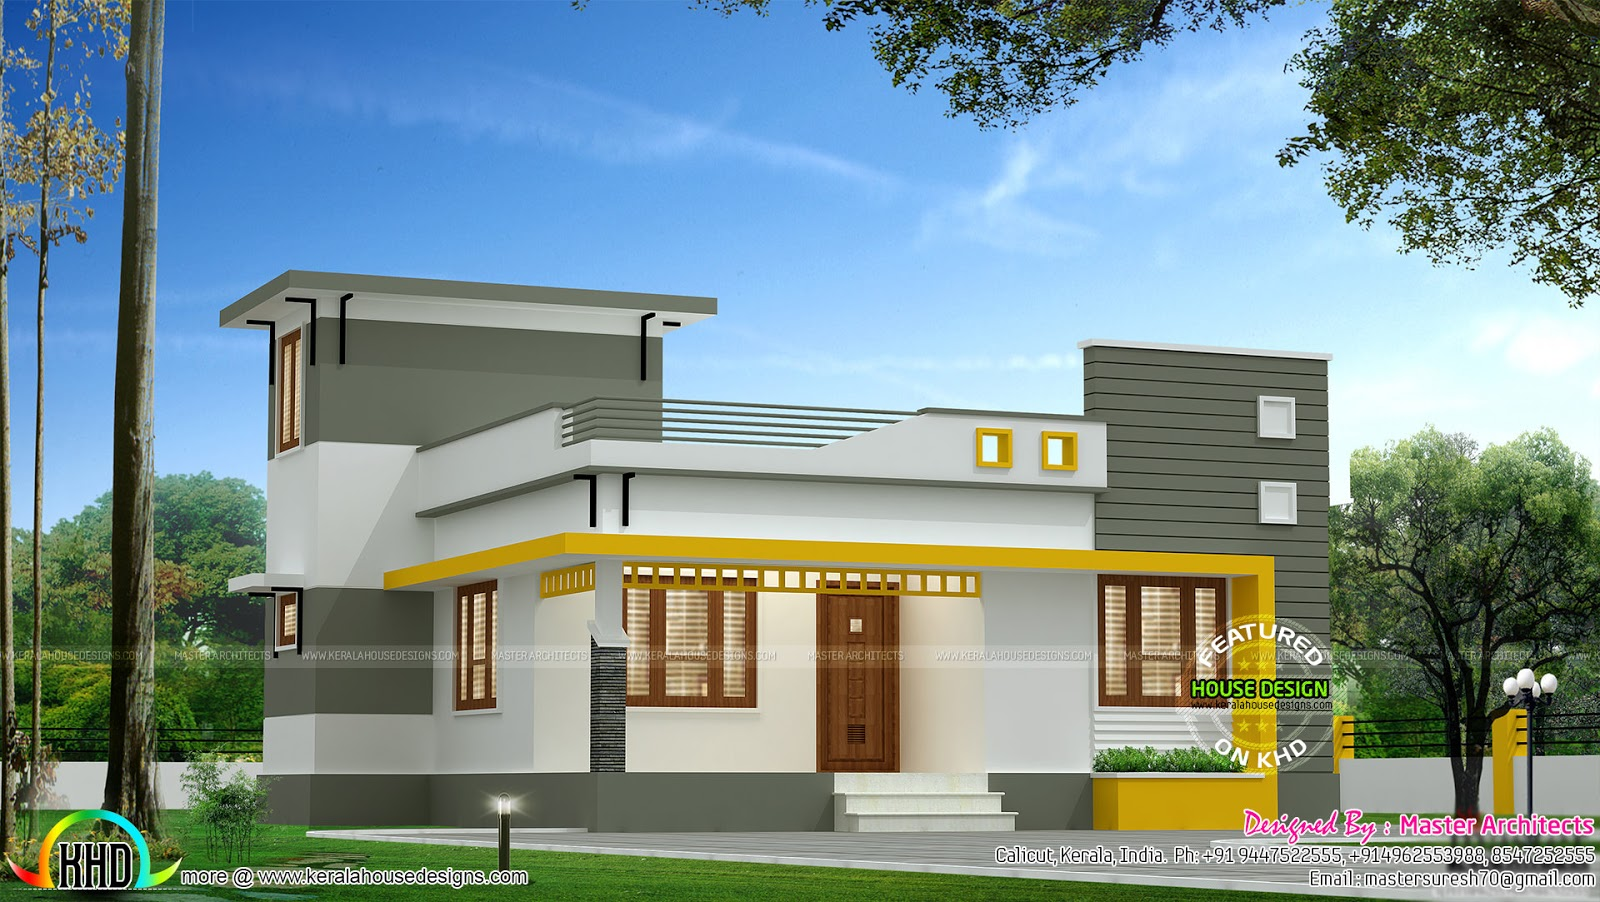 3 bedroom single floor modern architecture home kerala for One floor modern house plans